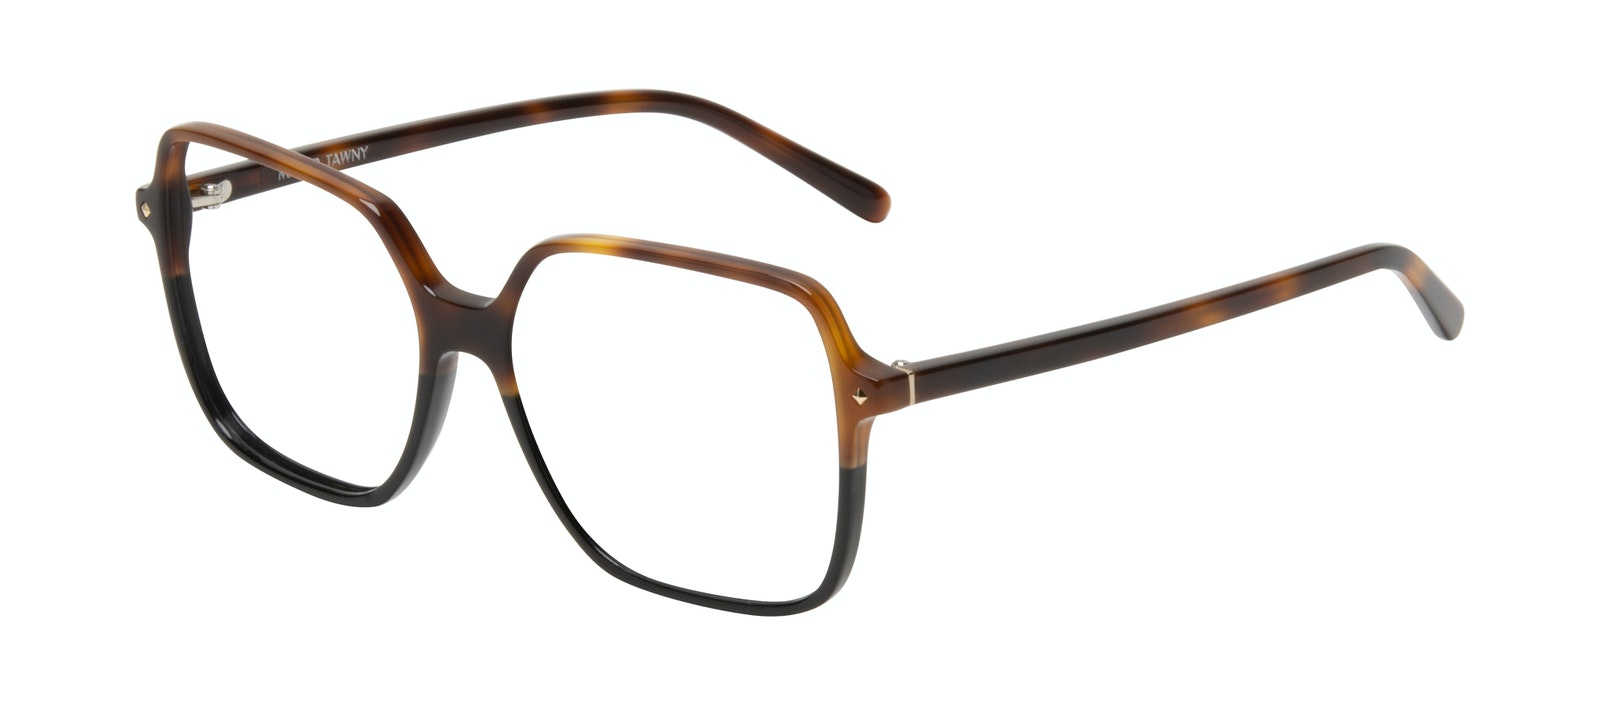 Affordable Fashion Glasses Square Eyeglasses Women Major Tawny Tilt